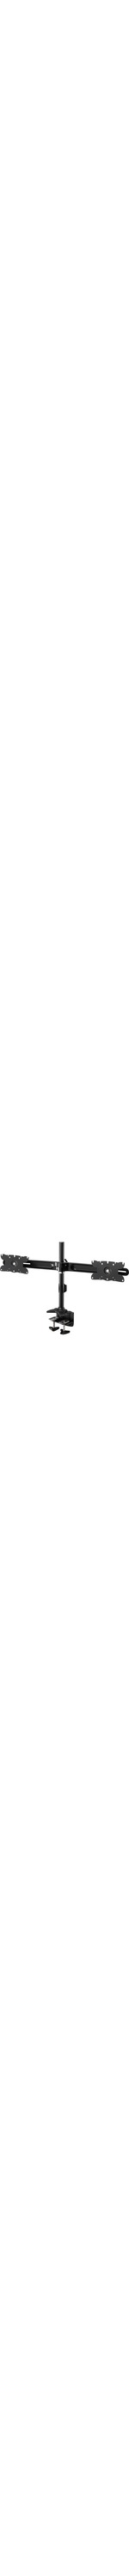 Amer AMR2C32 Clamp Mount for LCD Monitor - 32And#34; Screen Support